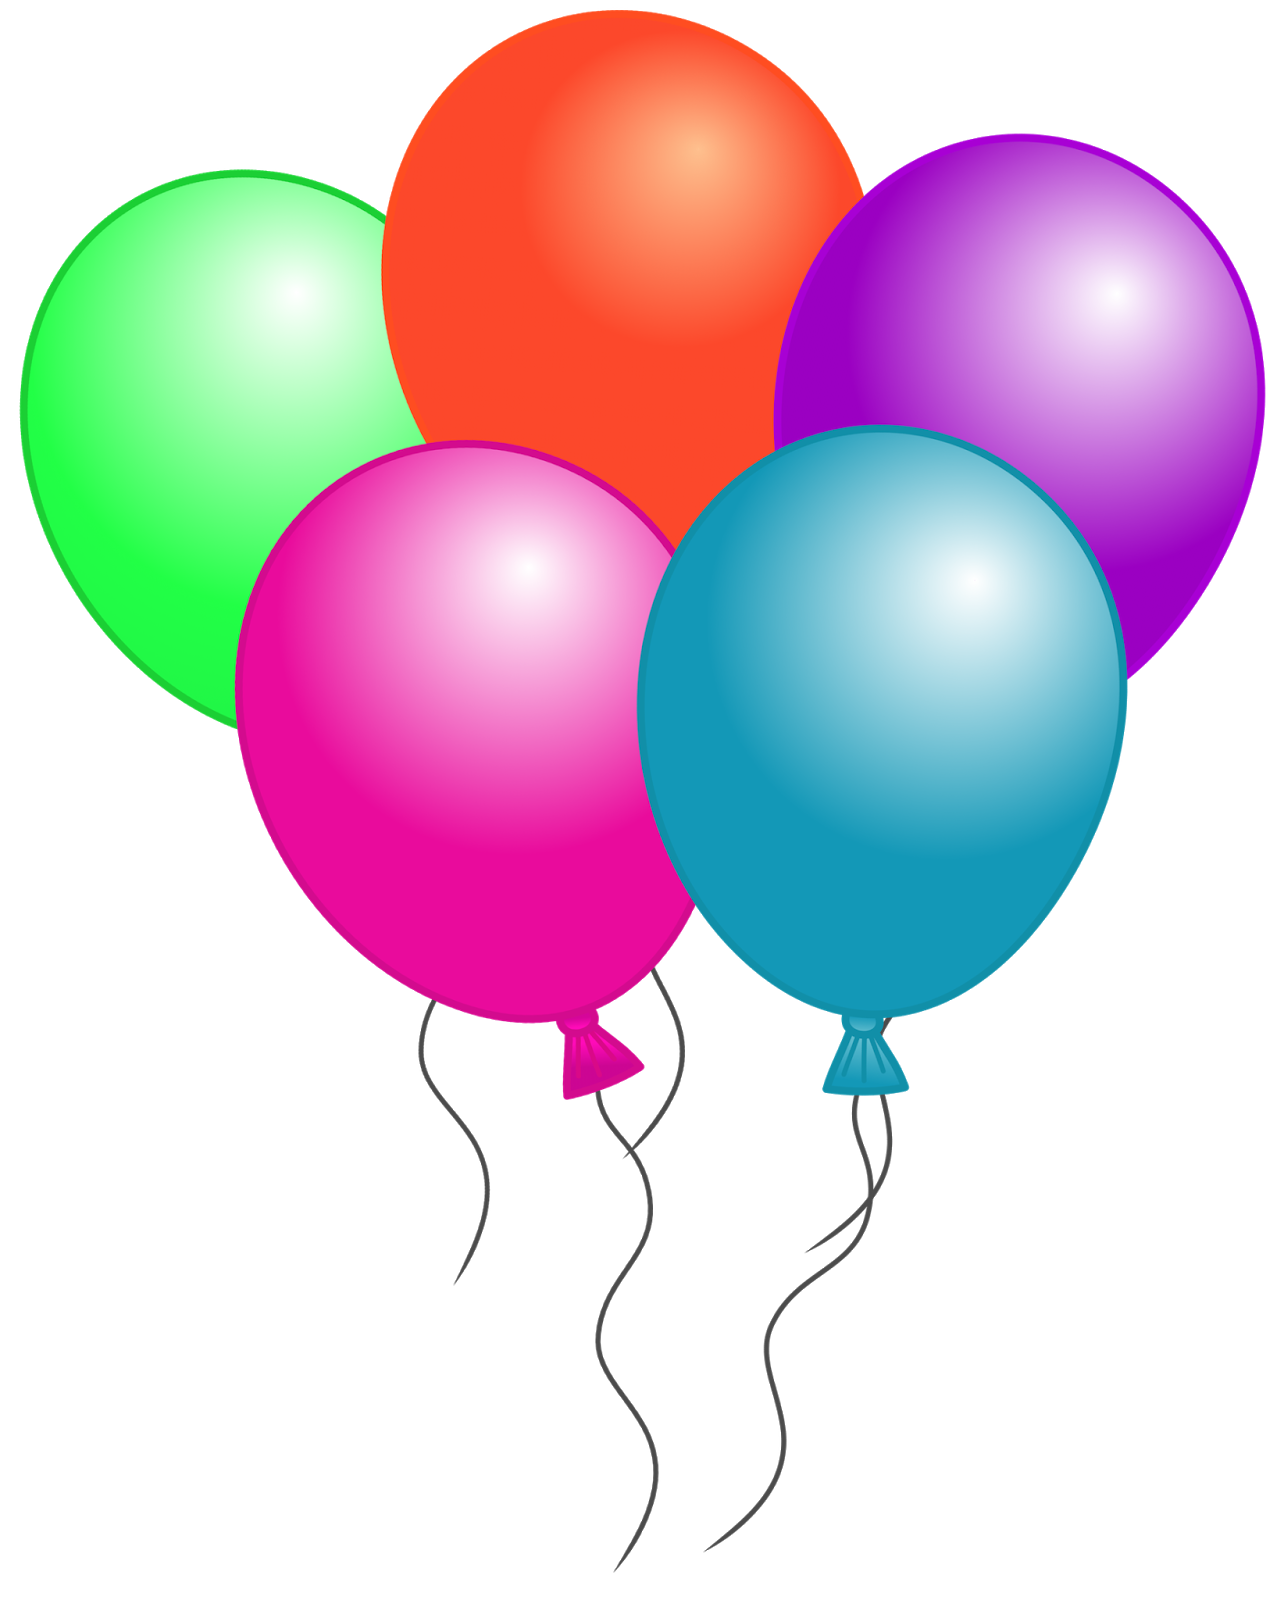 balloons clipart happy birthday